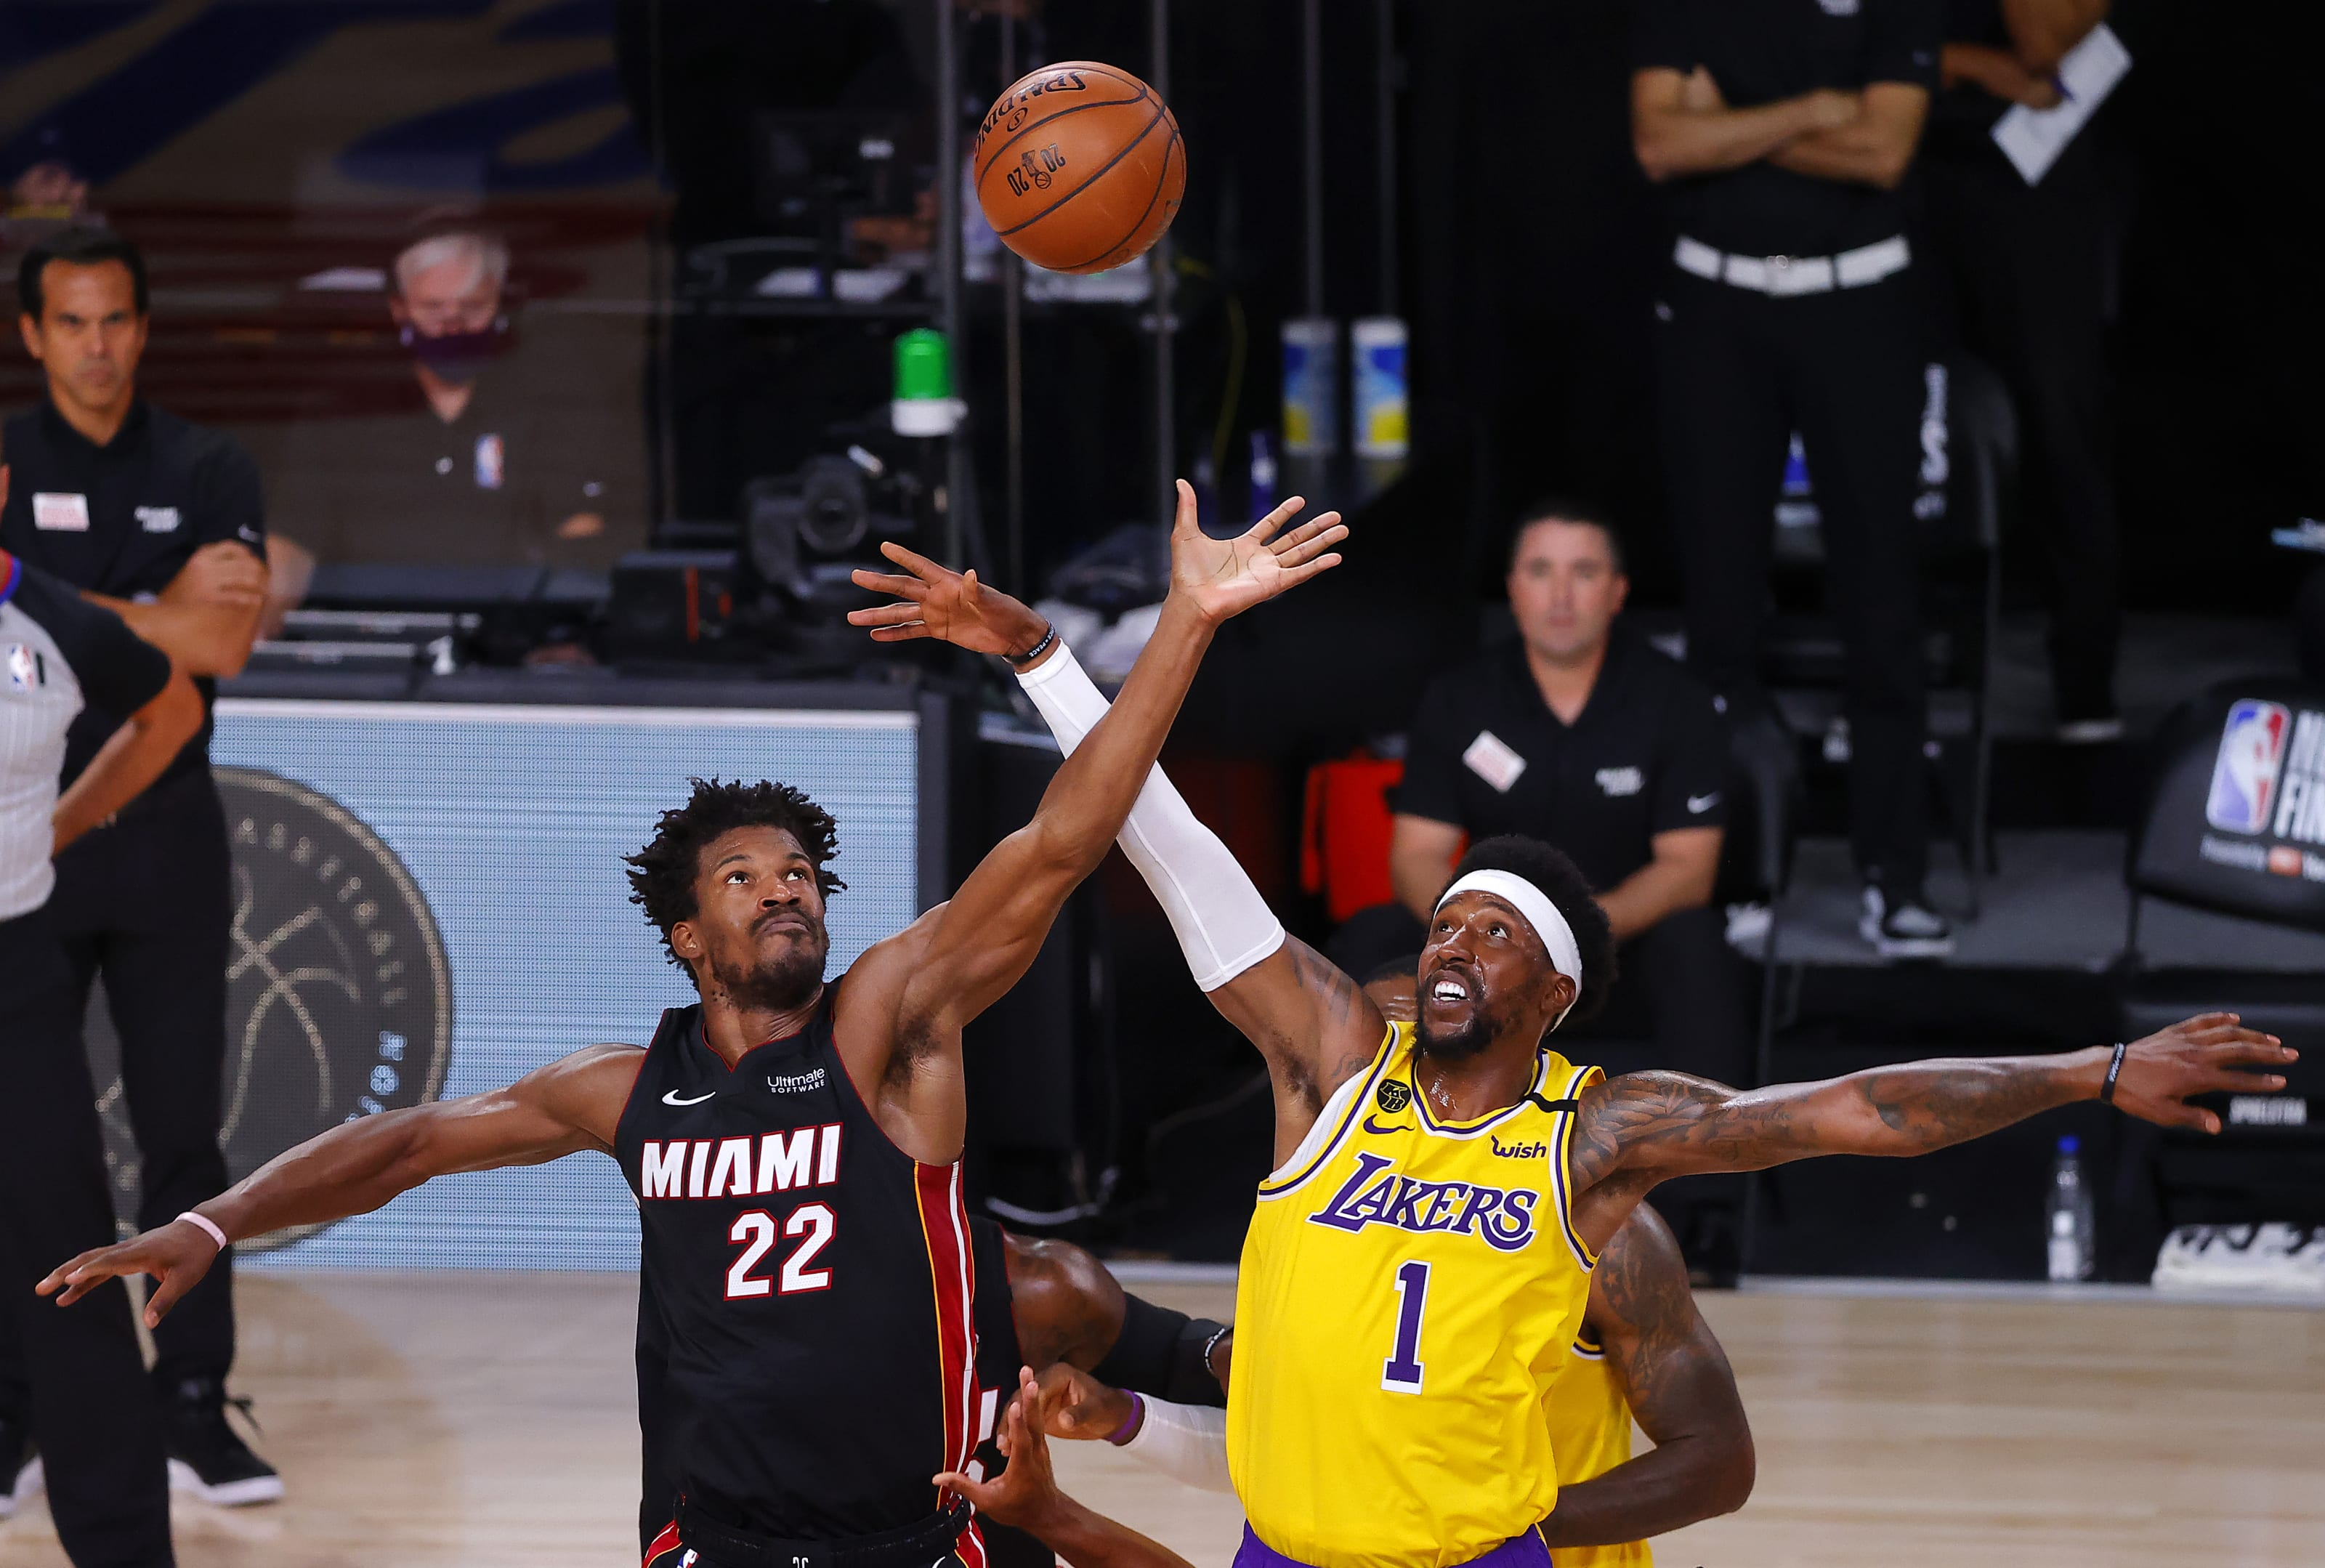 Nba Finals 3 Takeaways As The Los Angeles Lakers Dominate Game 1